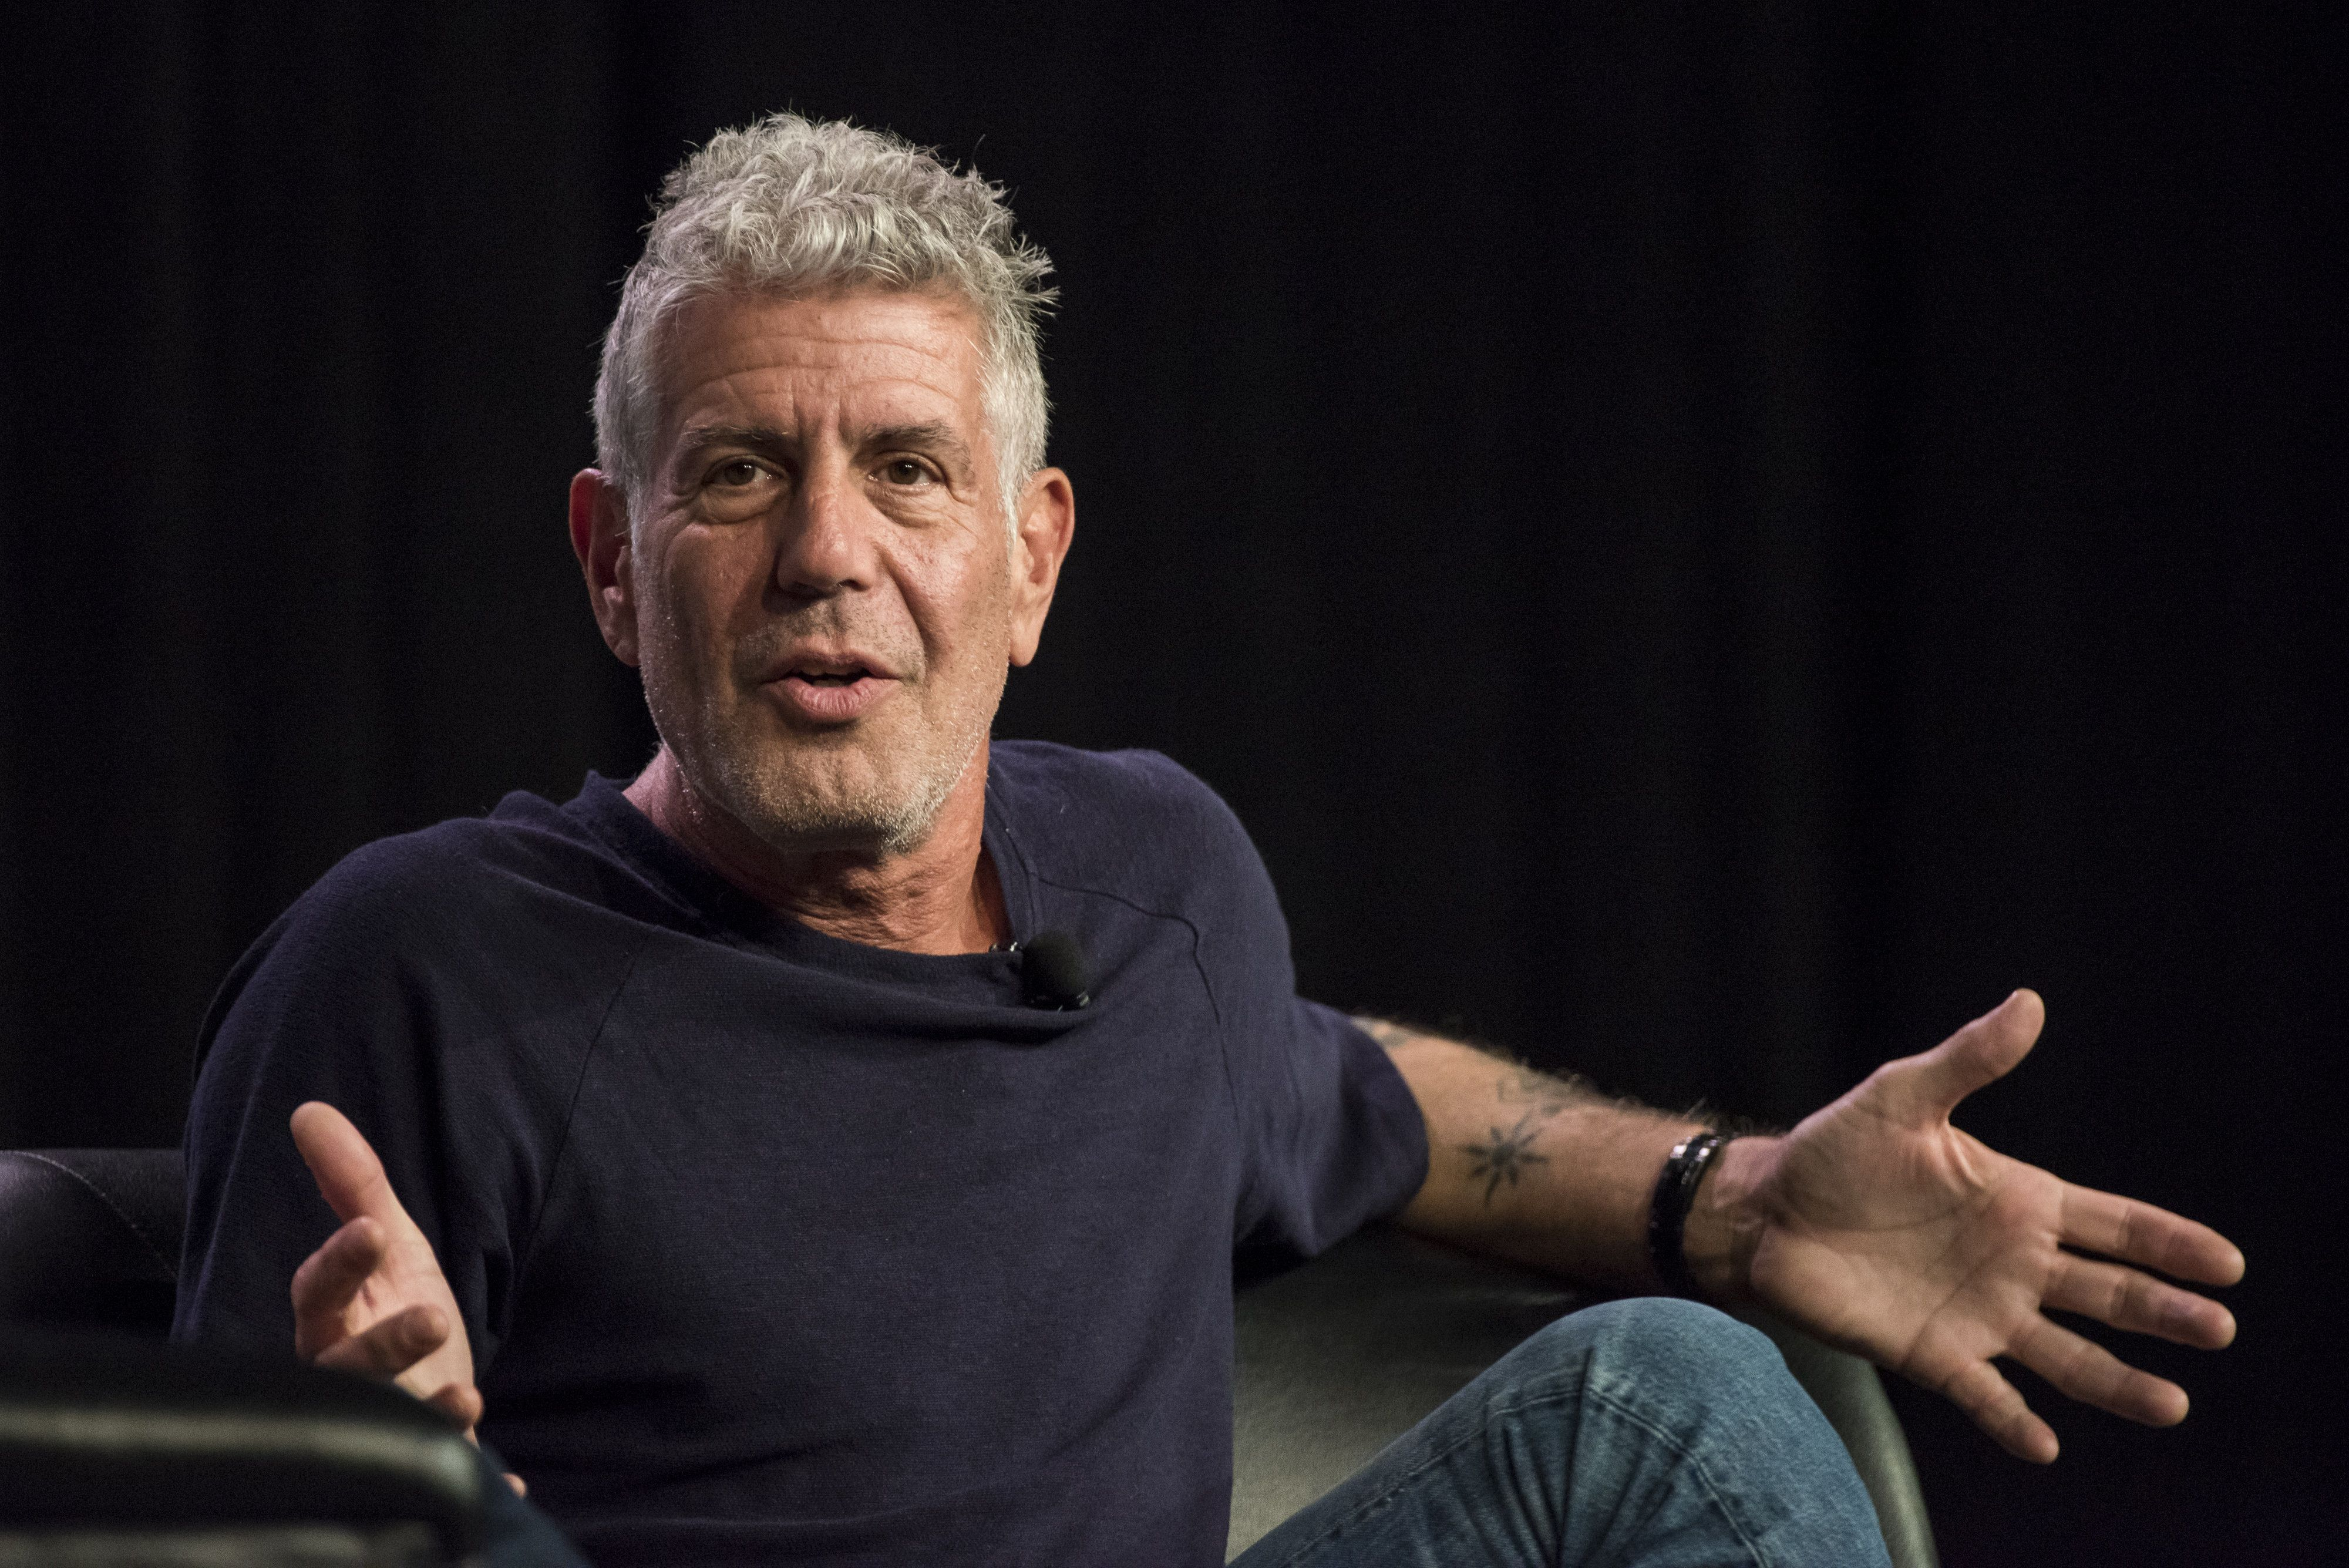 Anthony Bourdain, host of CNNs Parts Unknown, speaks during the South By Southwest (SXSW) Interactive Festival at the Austin Convention Center in Austin, Texas, U.S., on Sunday, March 13, 2016. The SXSW Interactive Festival features presentations and panels from the brightest minds in emerging technology, scores of networking events hosted by industry leaders and a lineup of special programs showcasing new websites, video games, and startup ideas. Photographer: David Paul Morris/Bloomberg via Getty Images